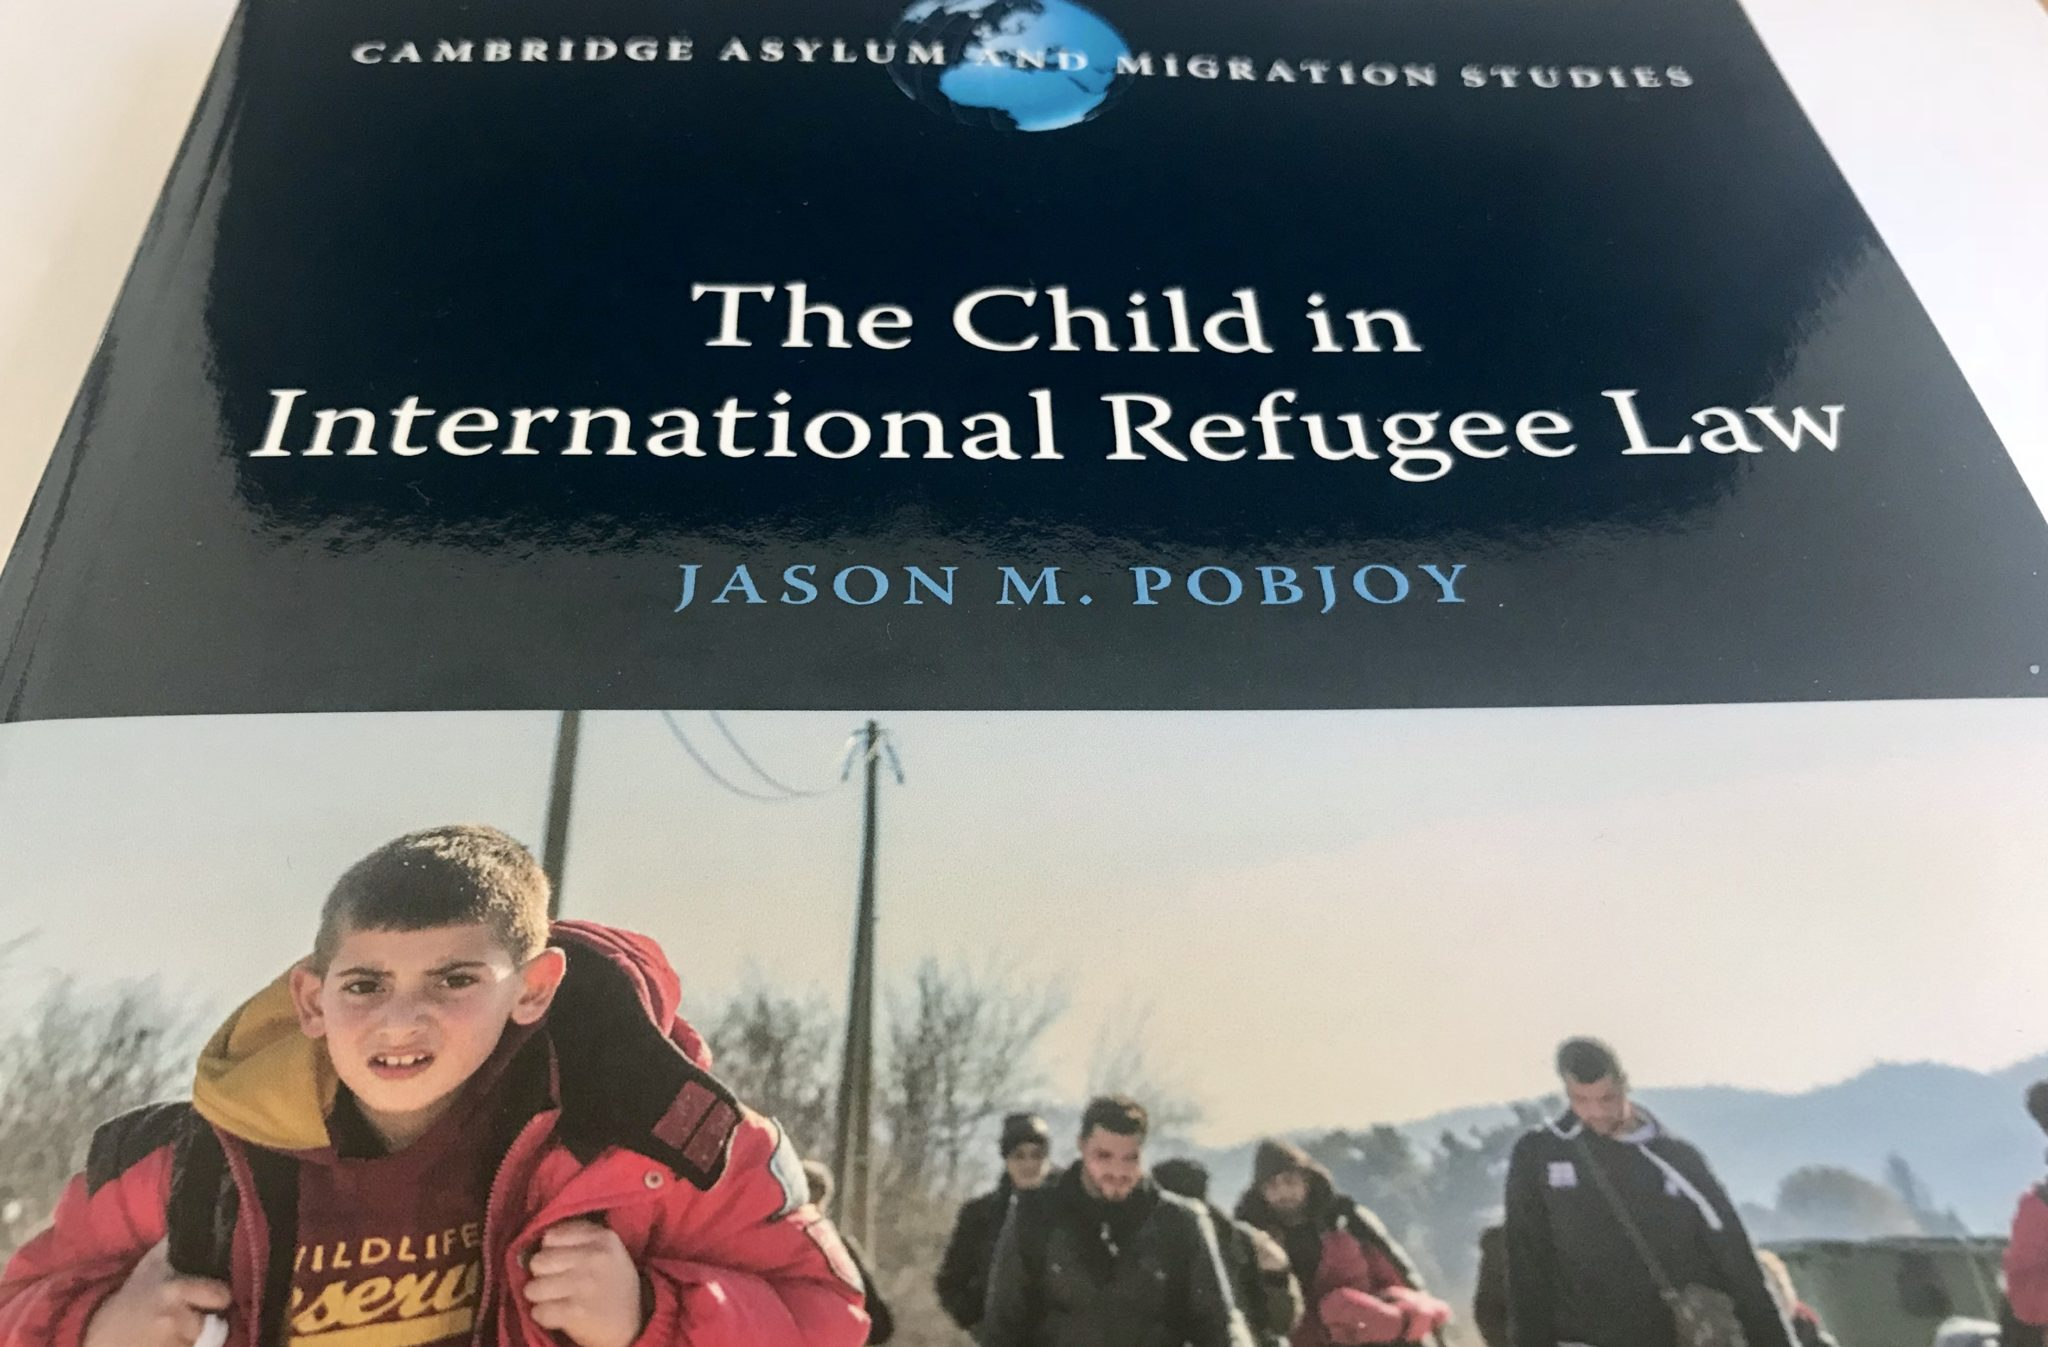 Book review: The Child in International Refugee Law by Jason Pobjoy